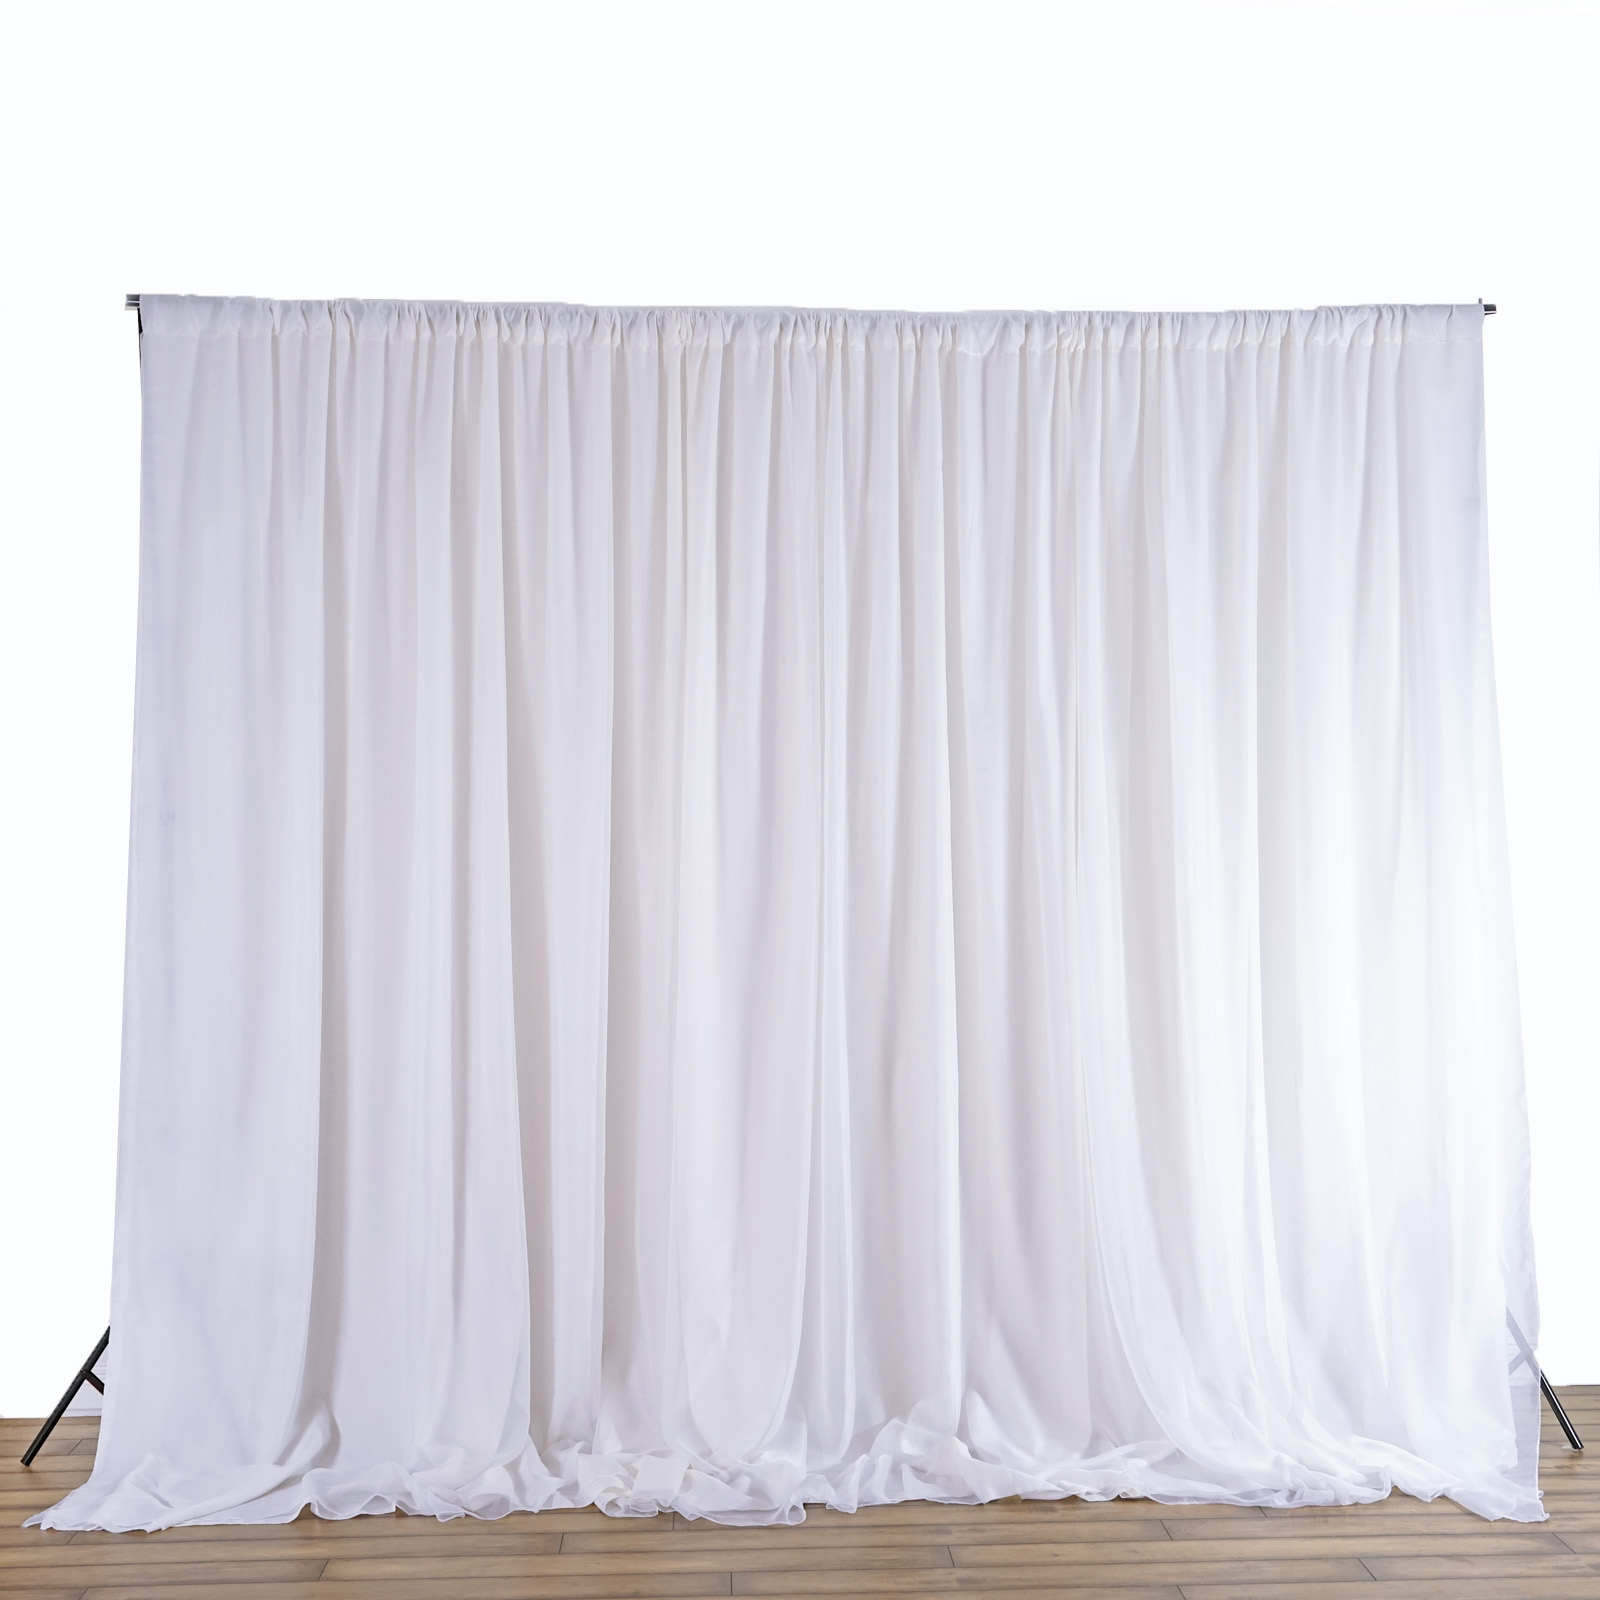 Wedding Altar Curtains: 20 Ft X 8 Ft WHITE Fabric BACKDROP Wedding Altar Ceremony